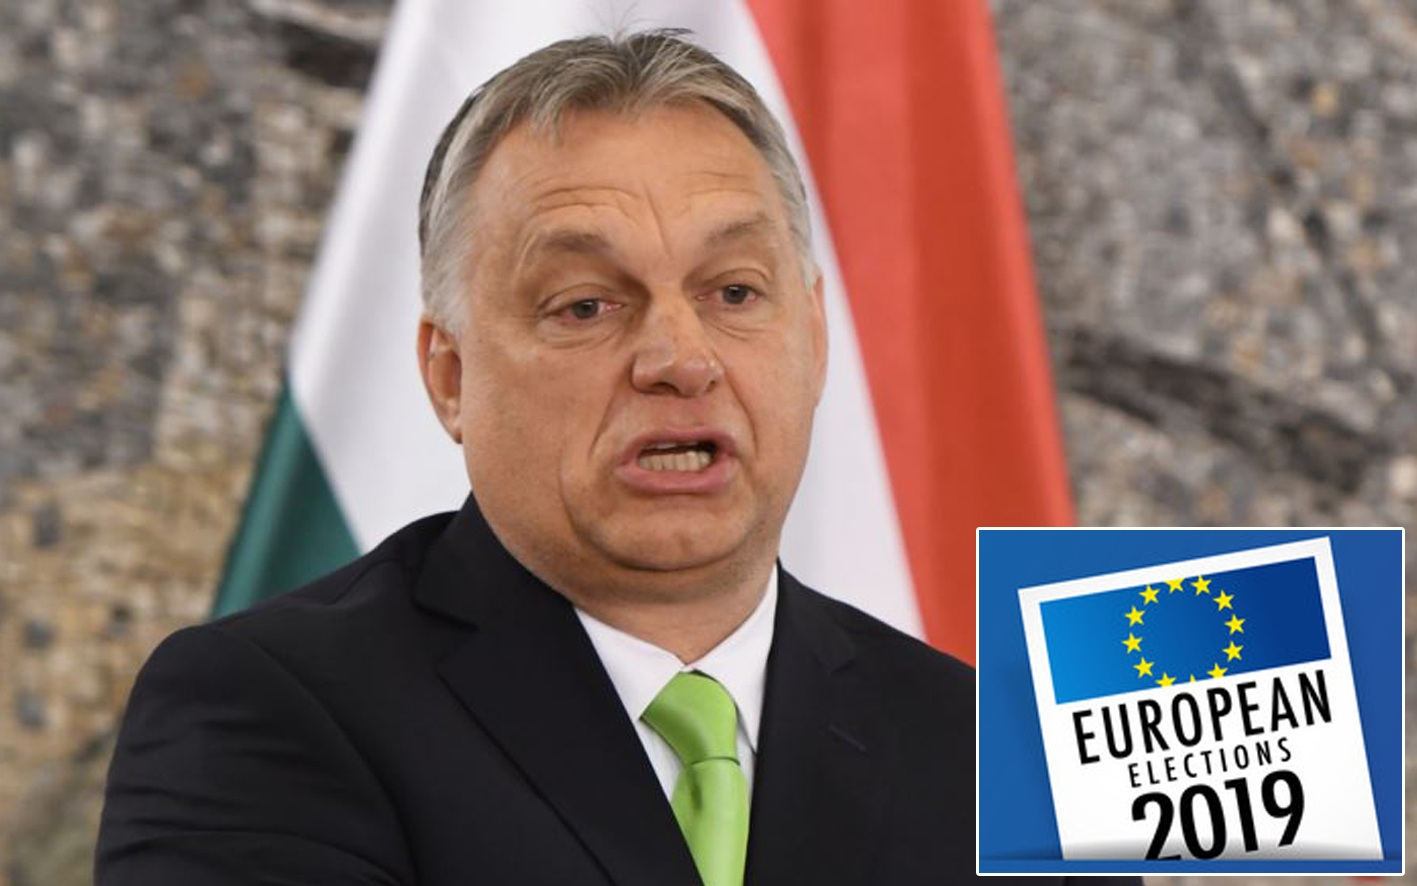 Christian Democracy, replace, multiculturalism, Viktor Orban, immigrants, transformation of Europe, Hungary, Angela Merkel